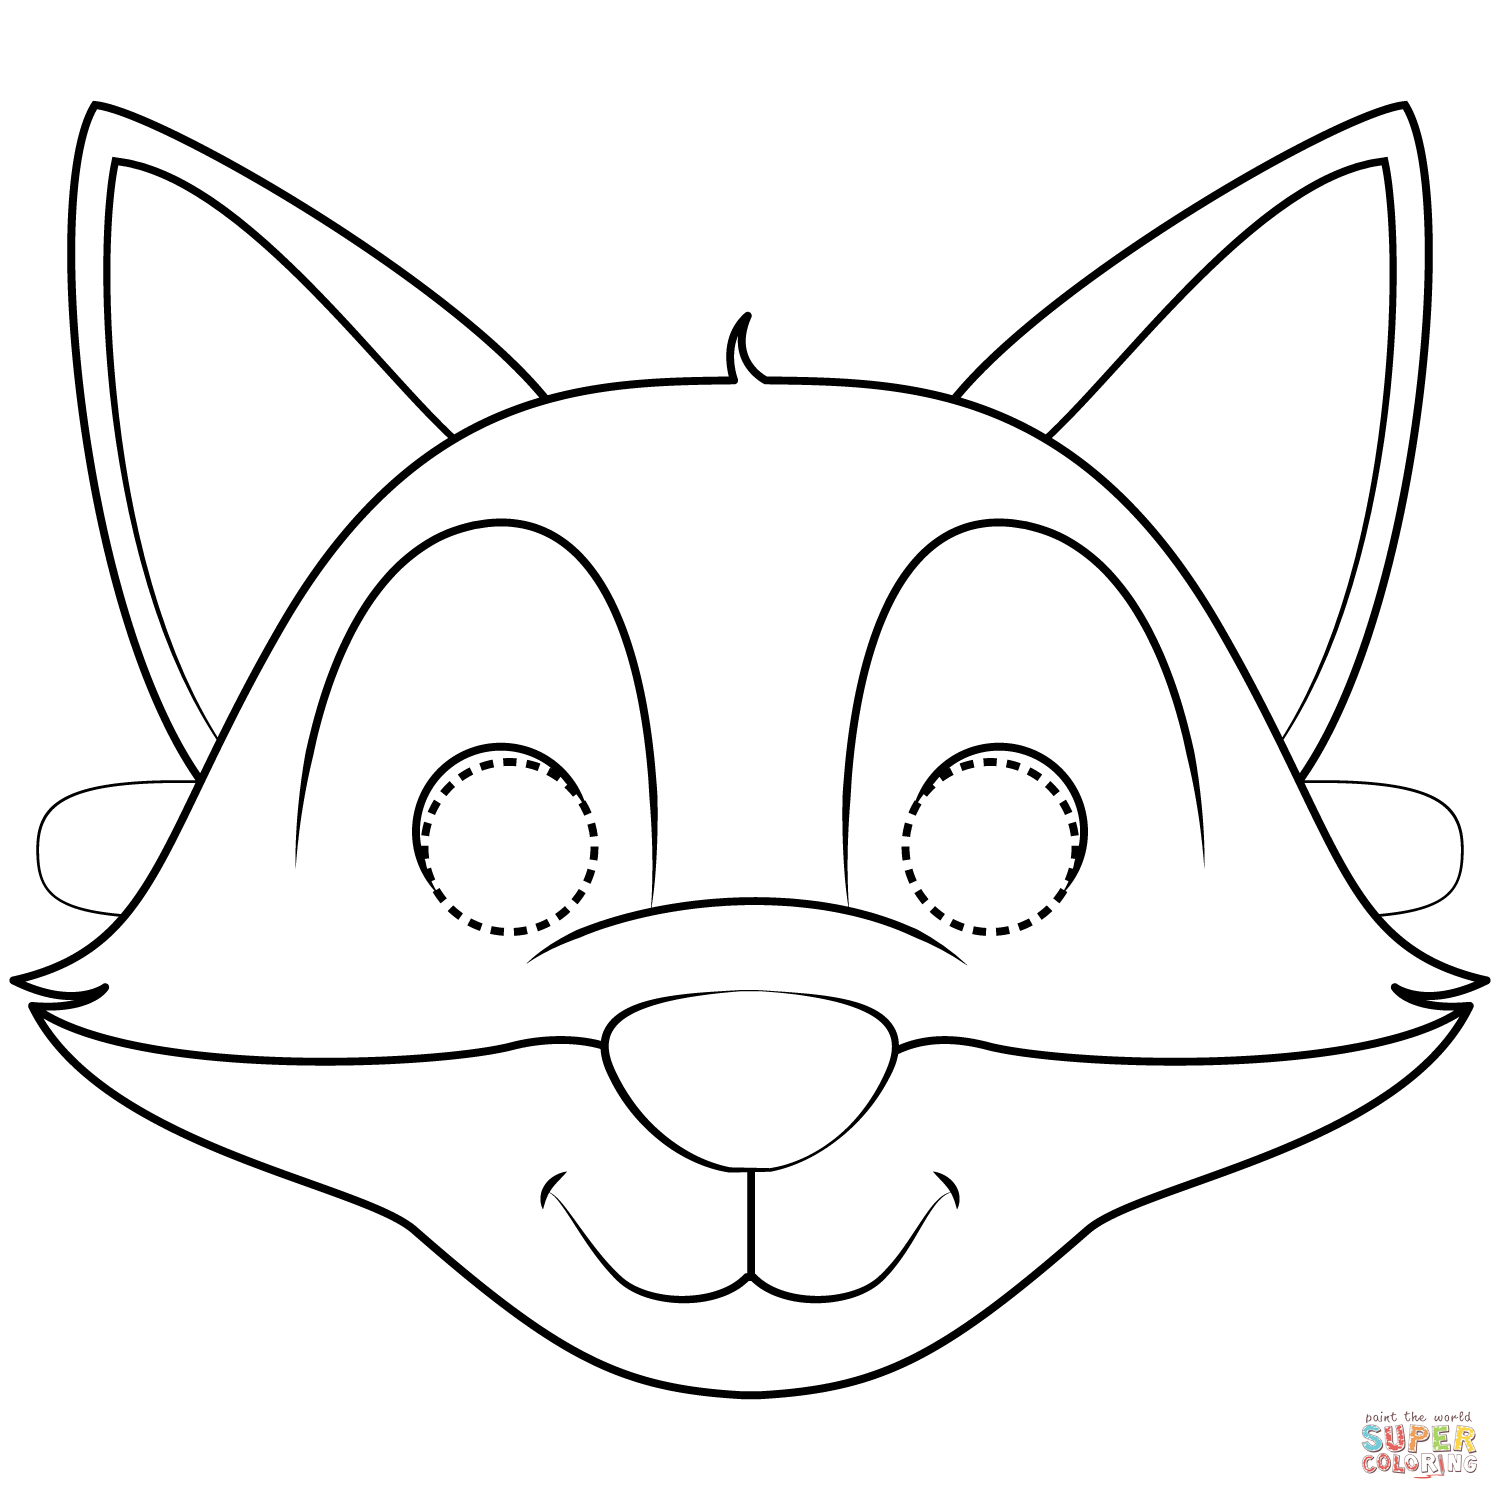 Fox Mask Coloring Page | Free Printable Coloring Pages - Free Printable Fox Mask Template